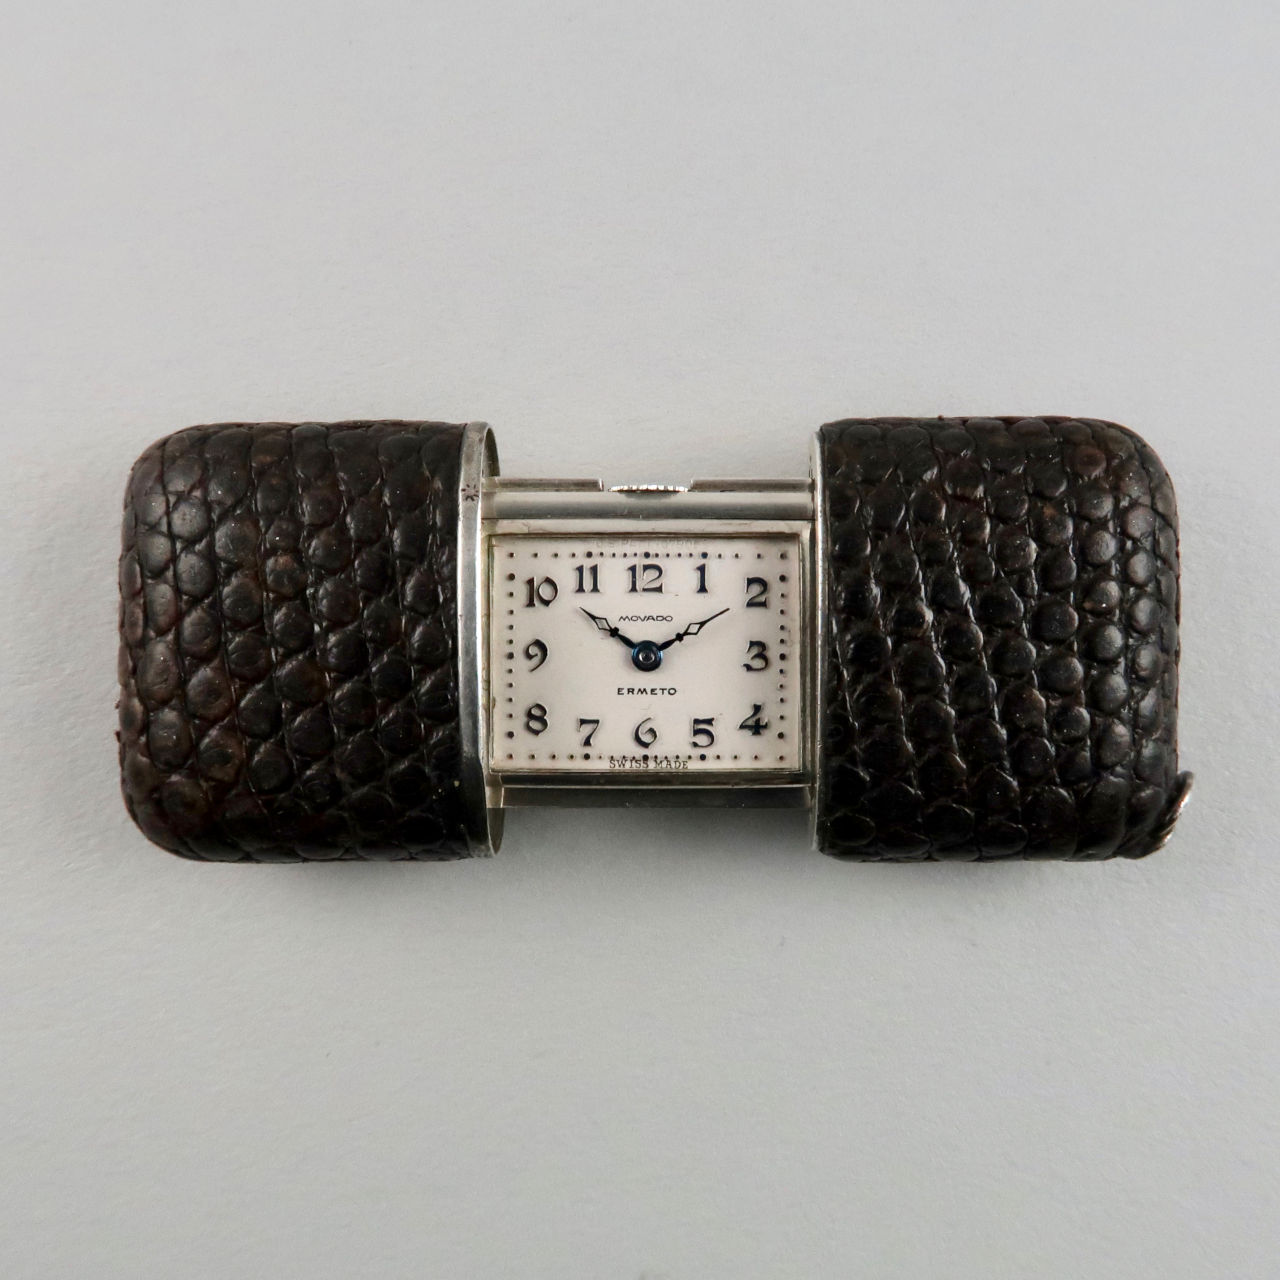 Movado Ermeto 'Baby' silver and leather covered purse watch 1929